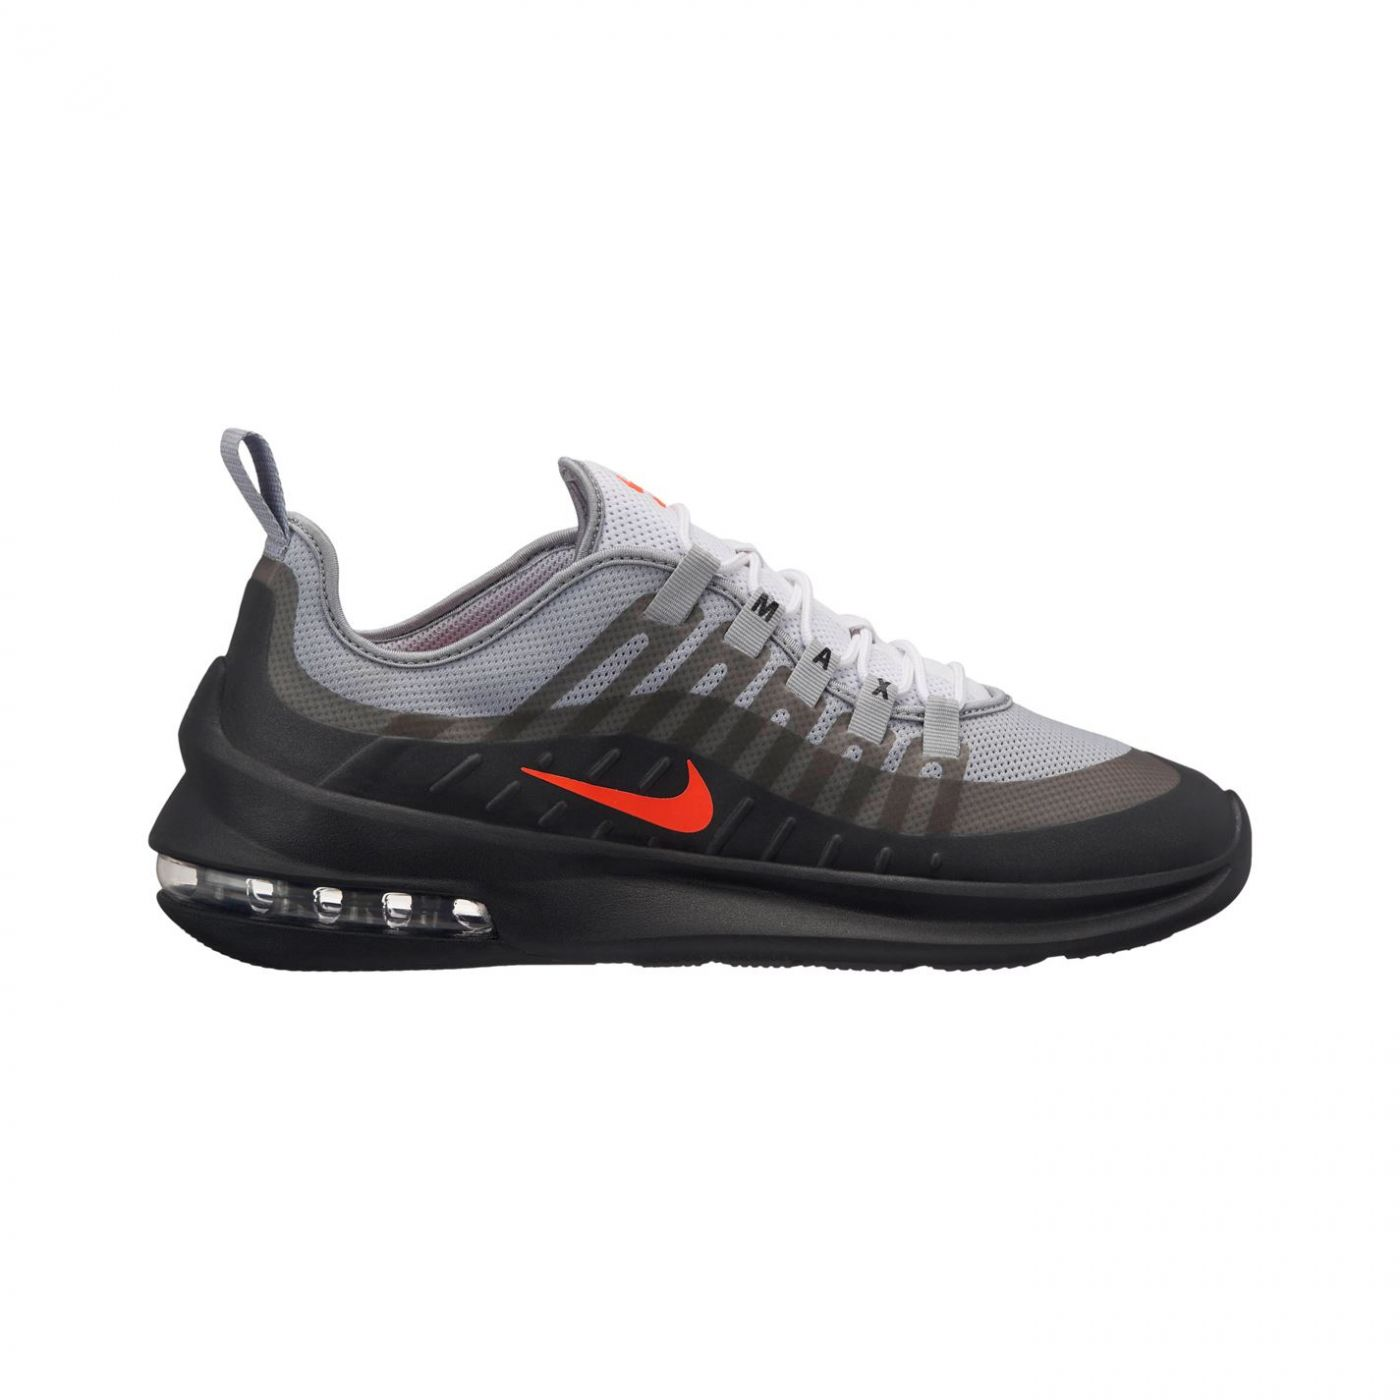 Nike Air Max Axis Trainers Mens - FACTCOOL  9bd59d7c9